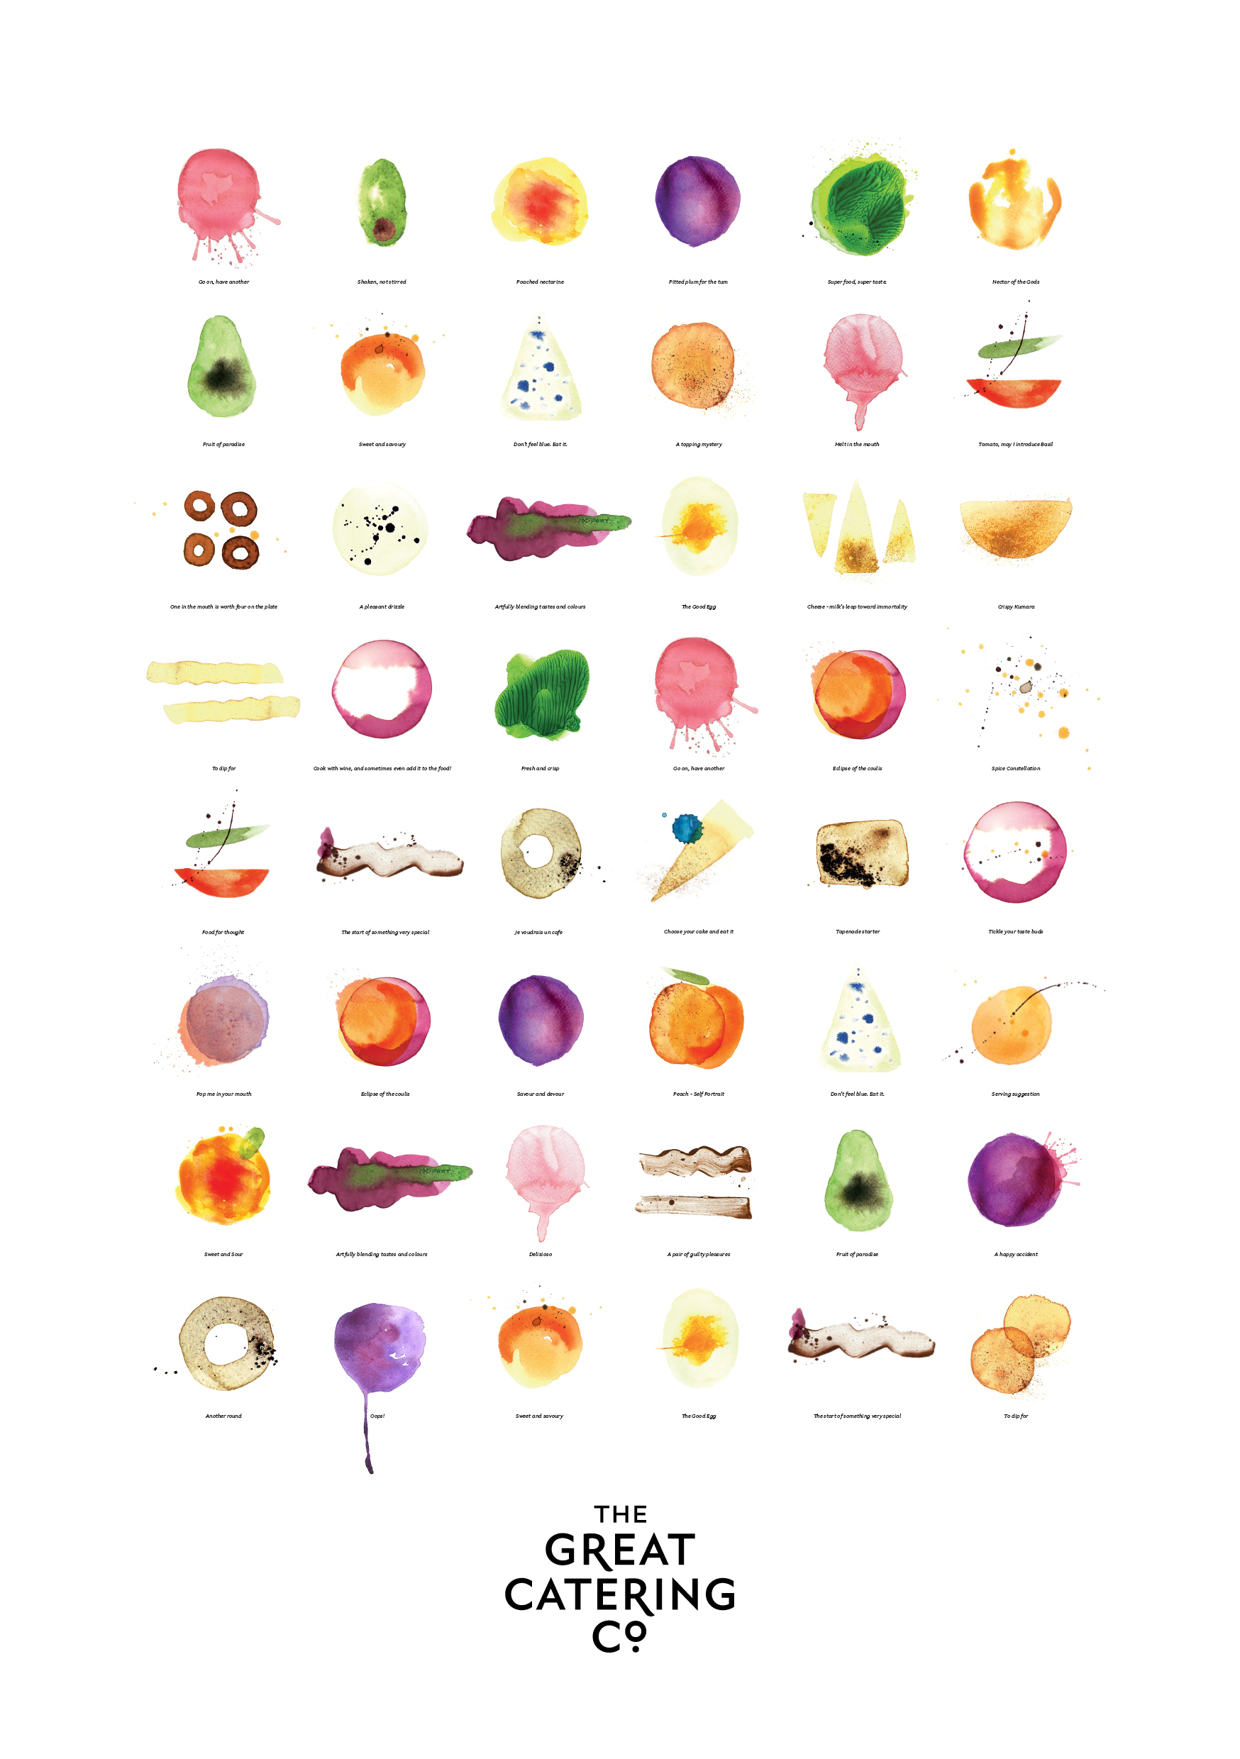 the-great-catering-co-food-watercolour.jpg